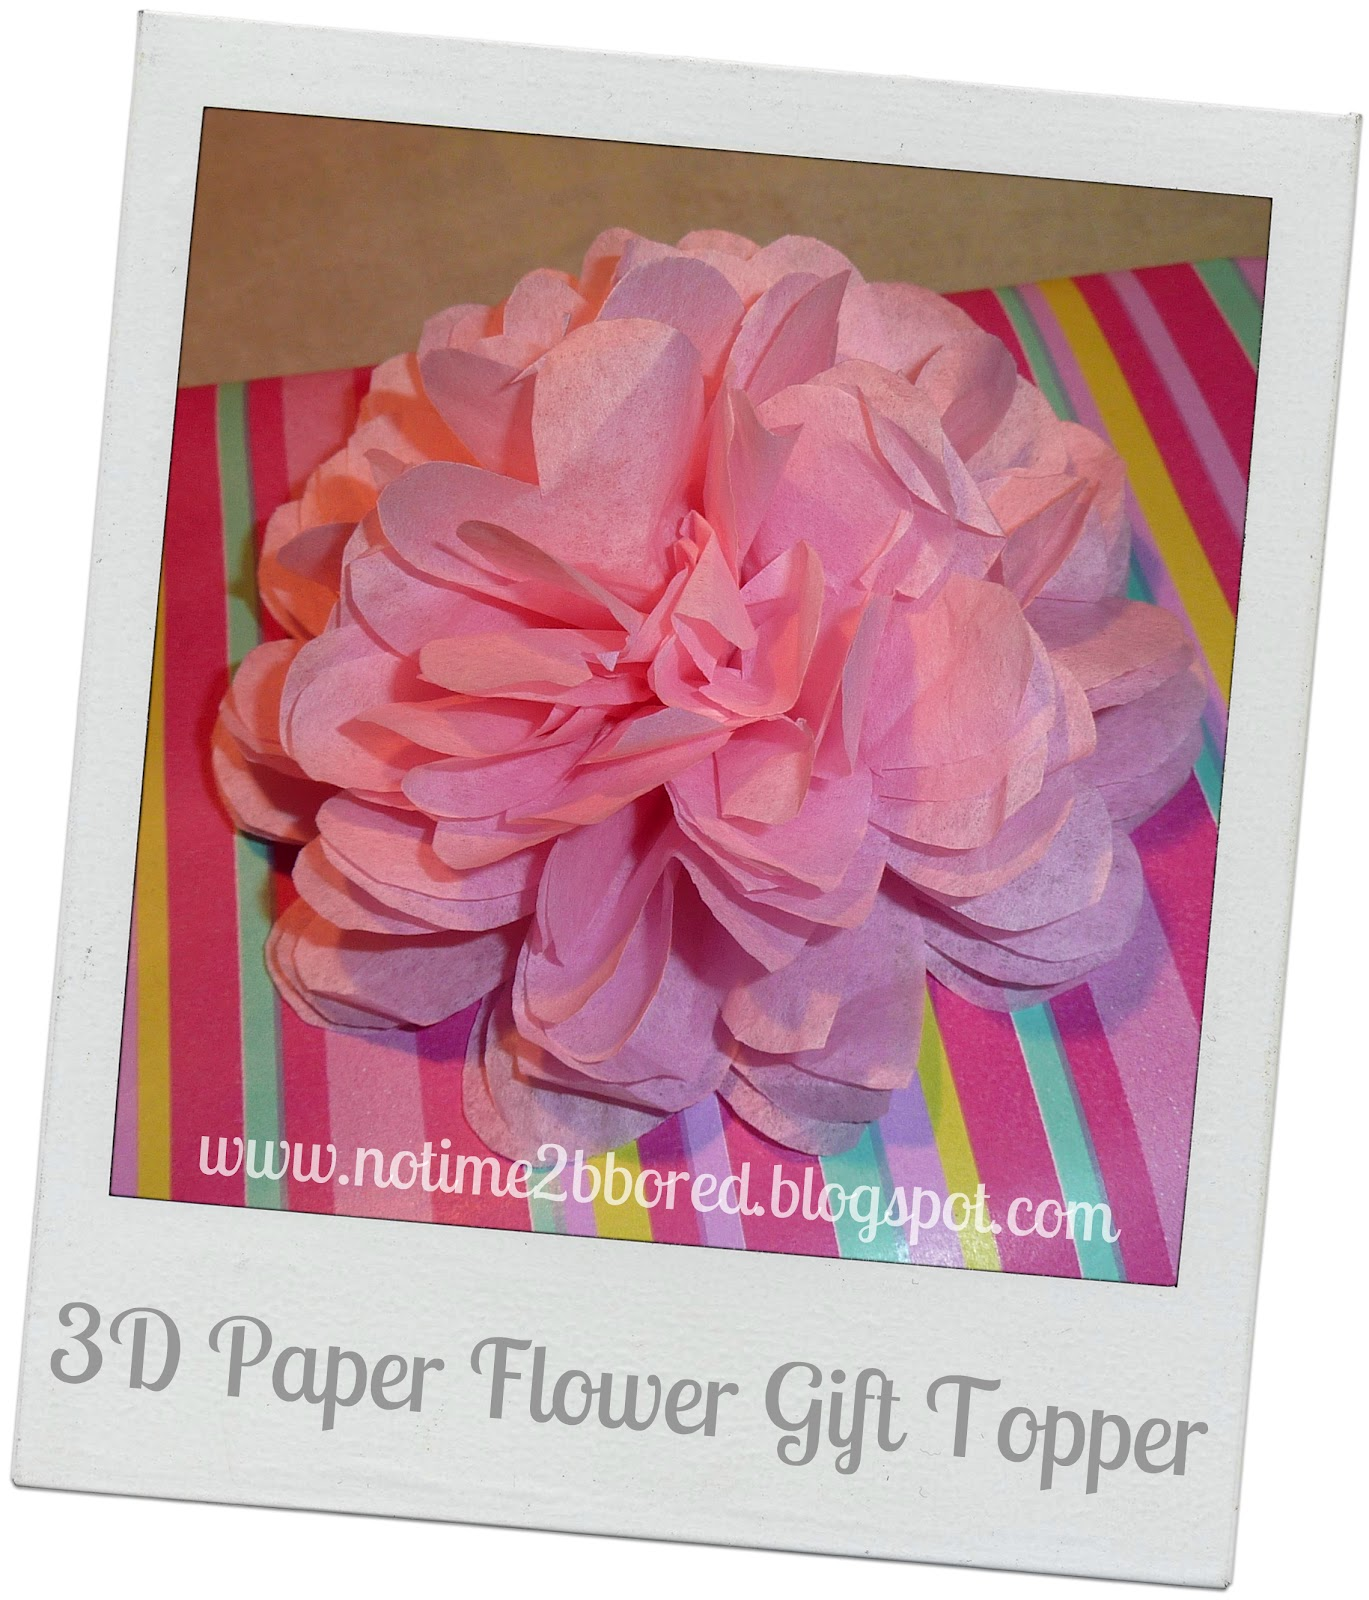 no time to be bored  3d paper flower gift topper